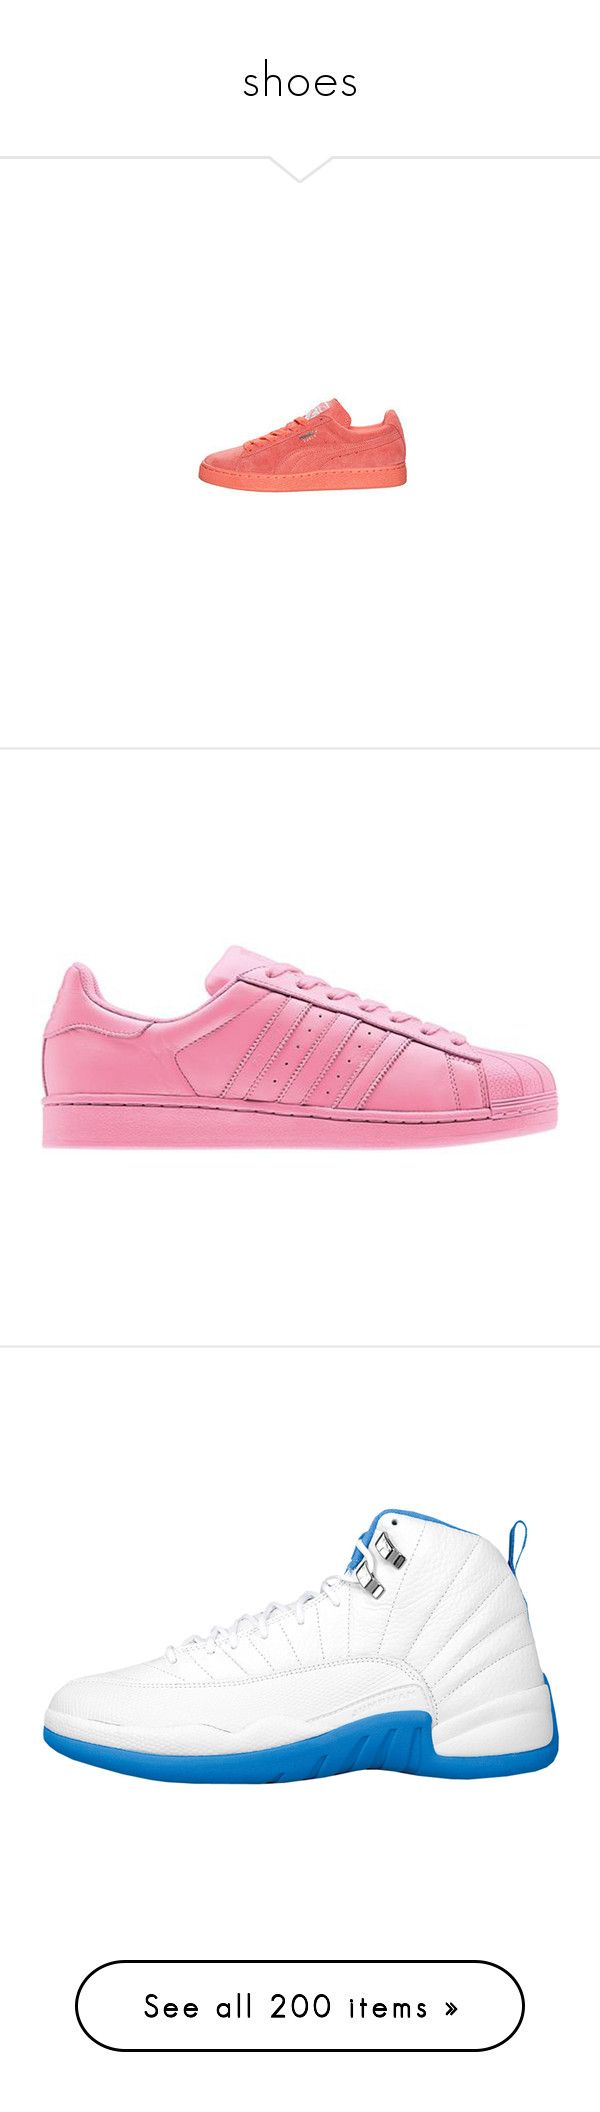 """shoes"" by pimpdaddyk ❤ liked on Polyvore featuring shoes, sneakers, puma, lace up shoes, punk platform shoes, creeper platform shoes, puma shoes, suede shoes, platform trainers and puma trainers"